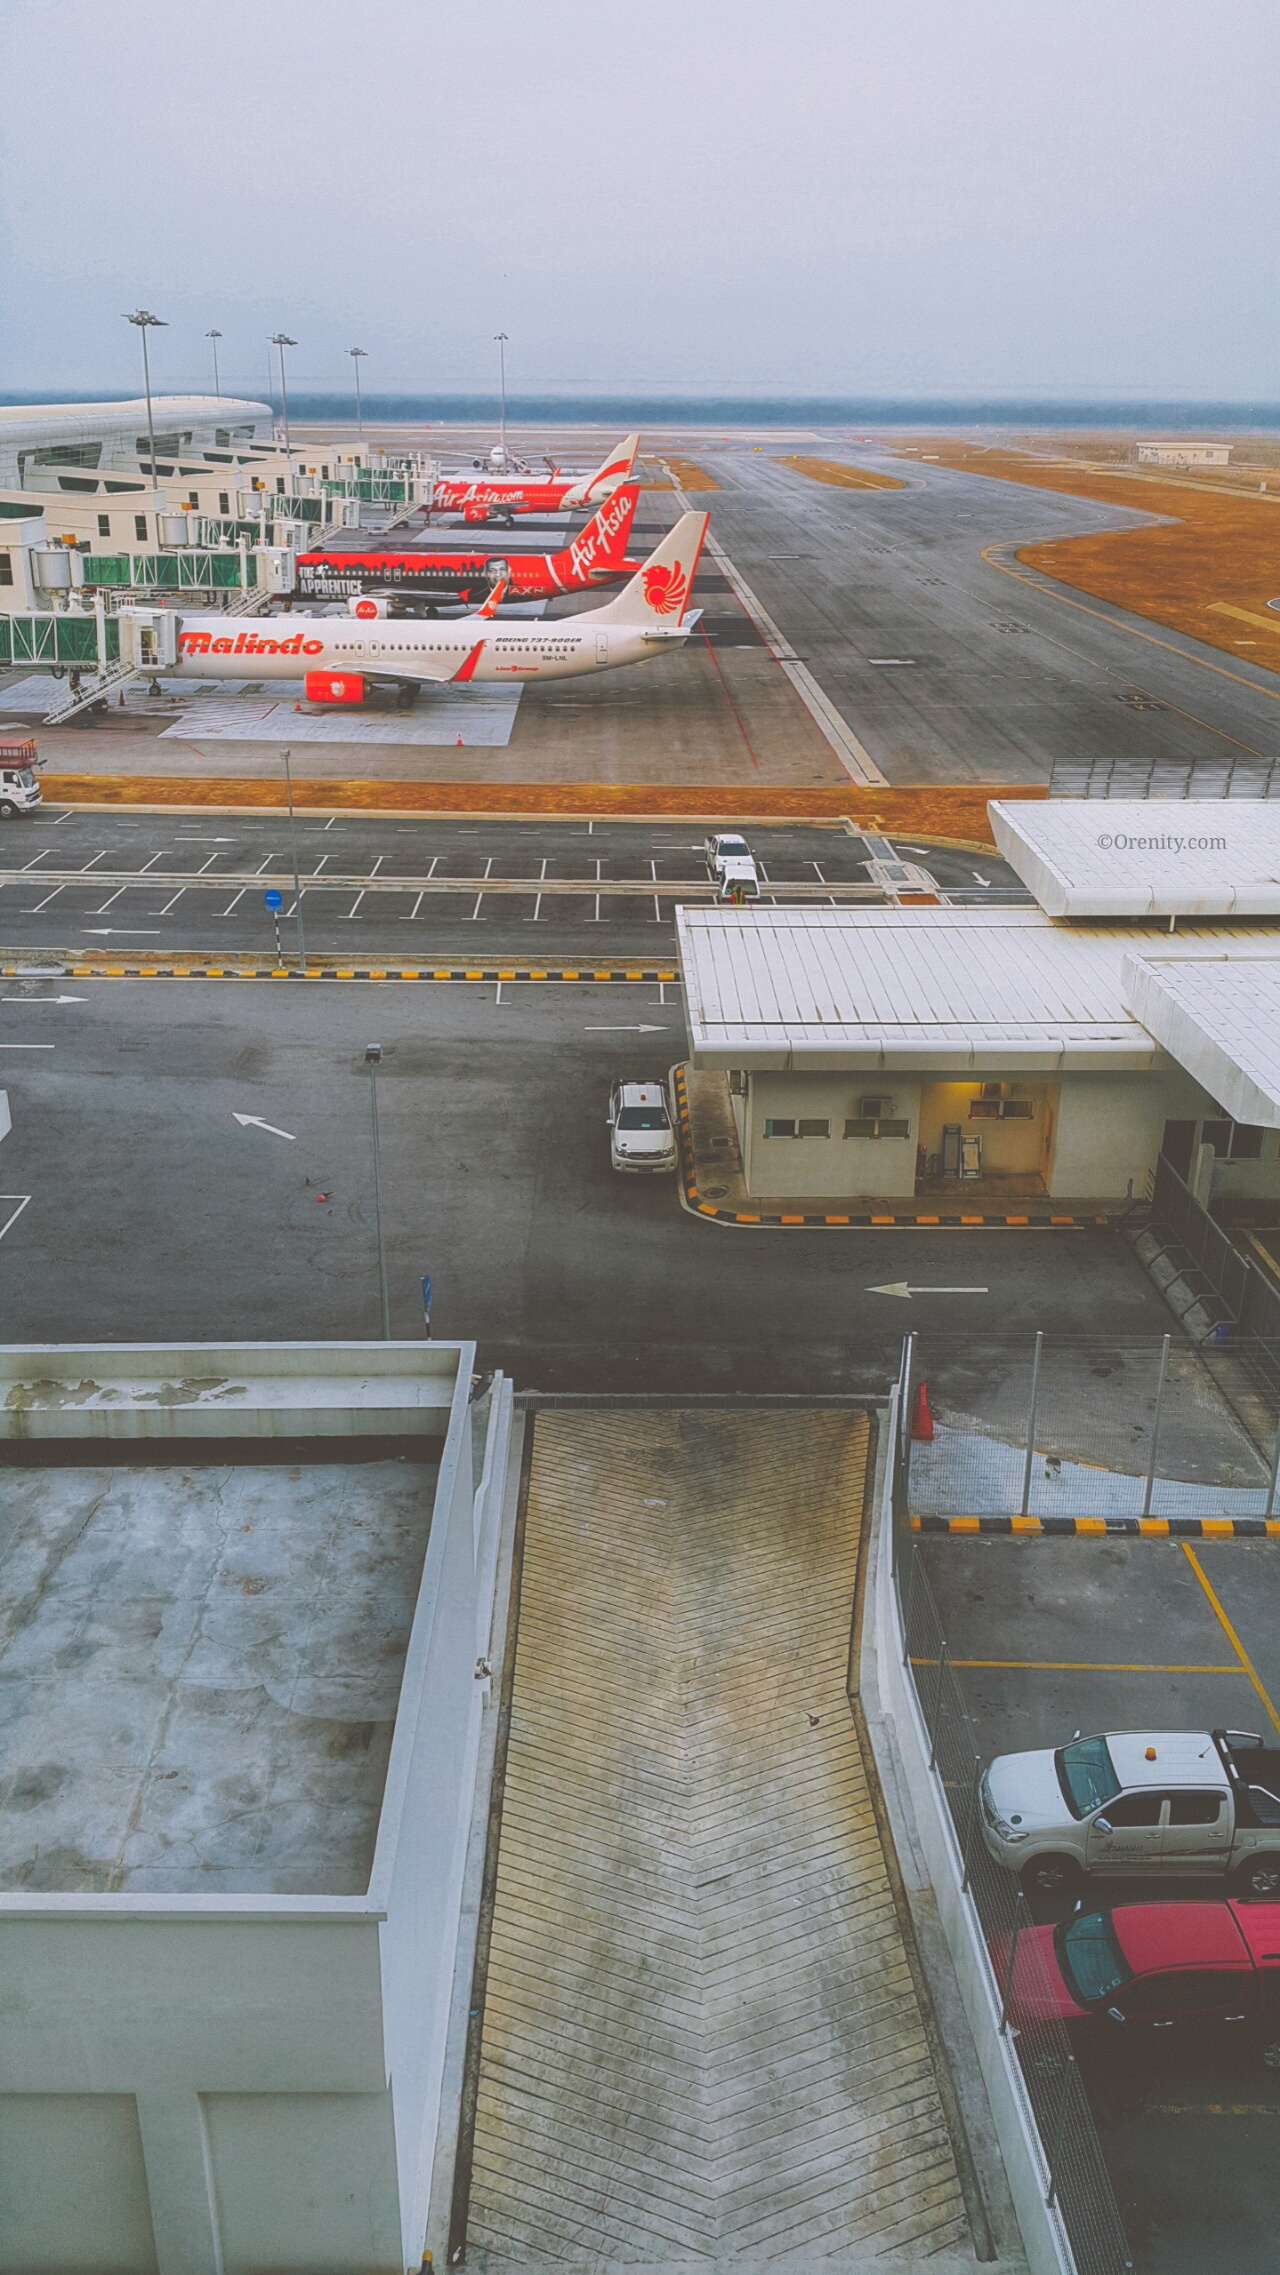 Double A - Airport and Airlines